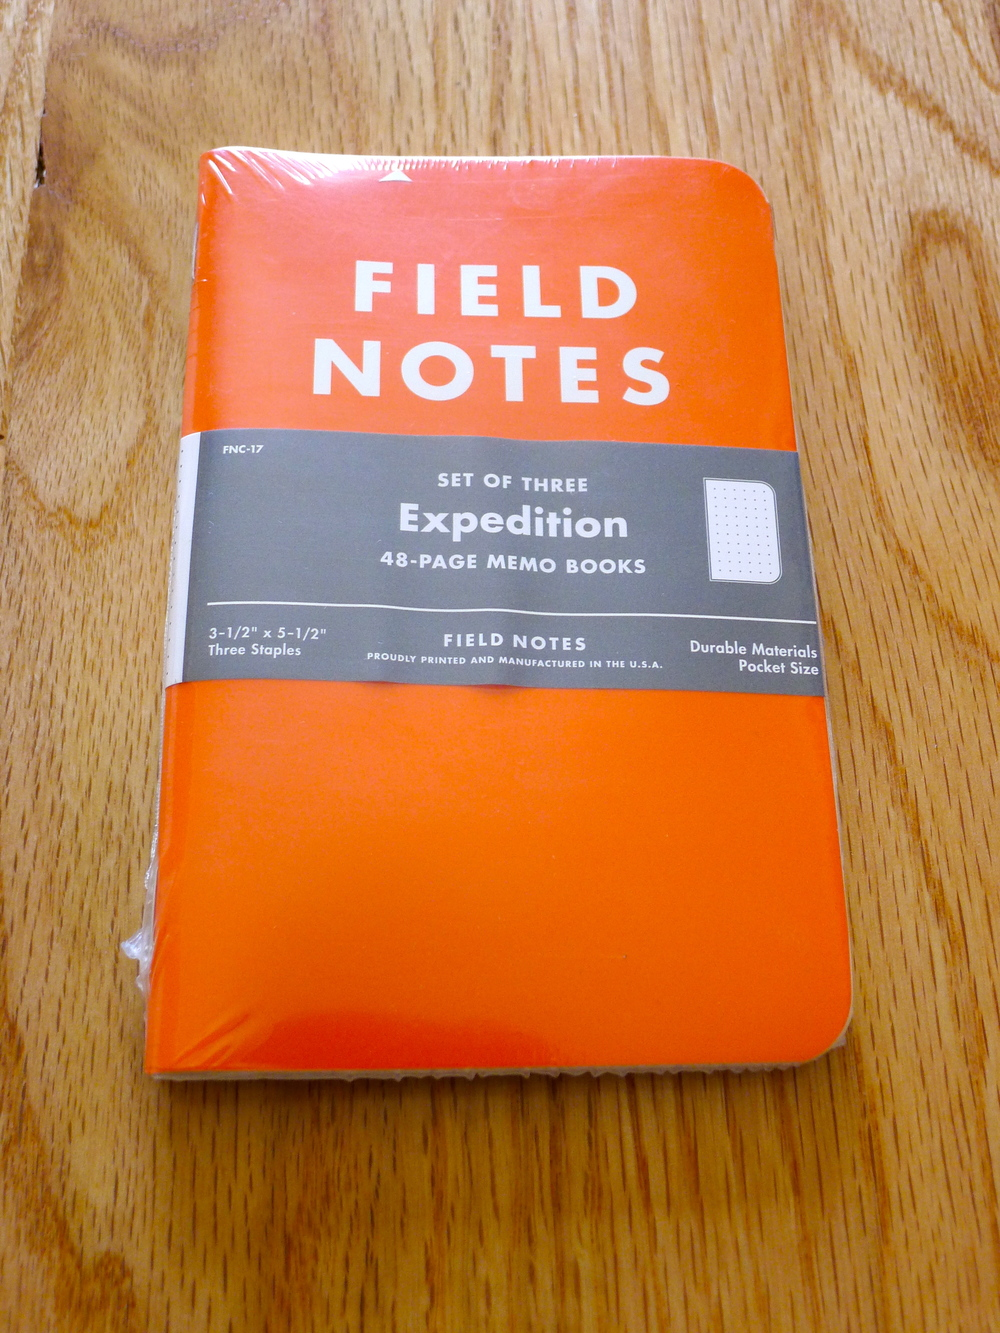 Field Notes Expedition Edition - Winter 2012